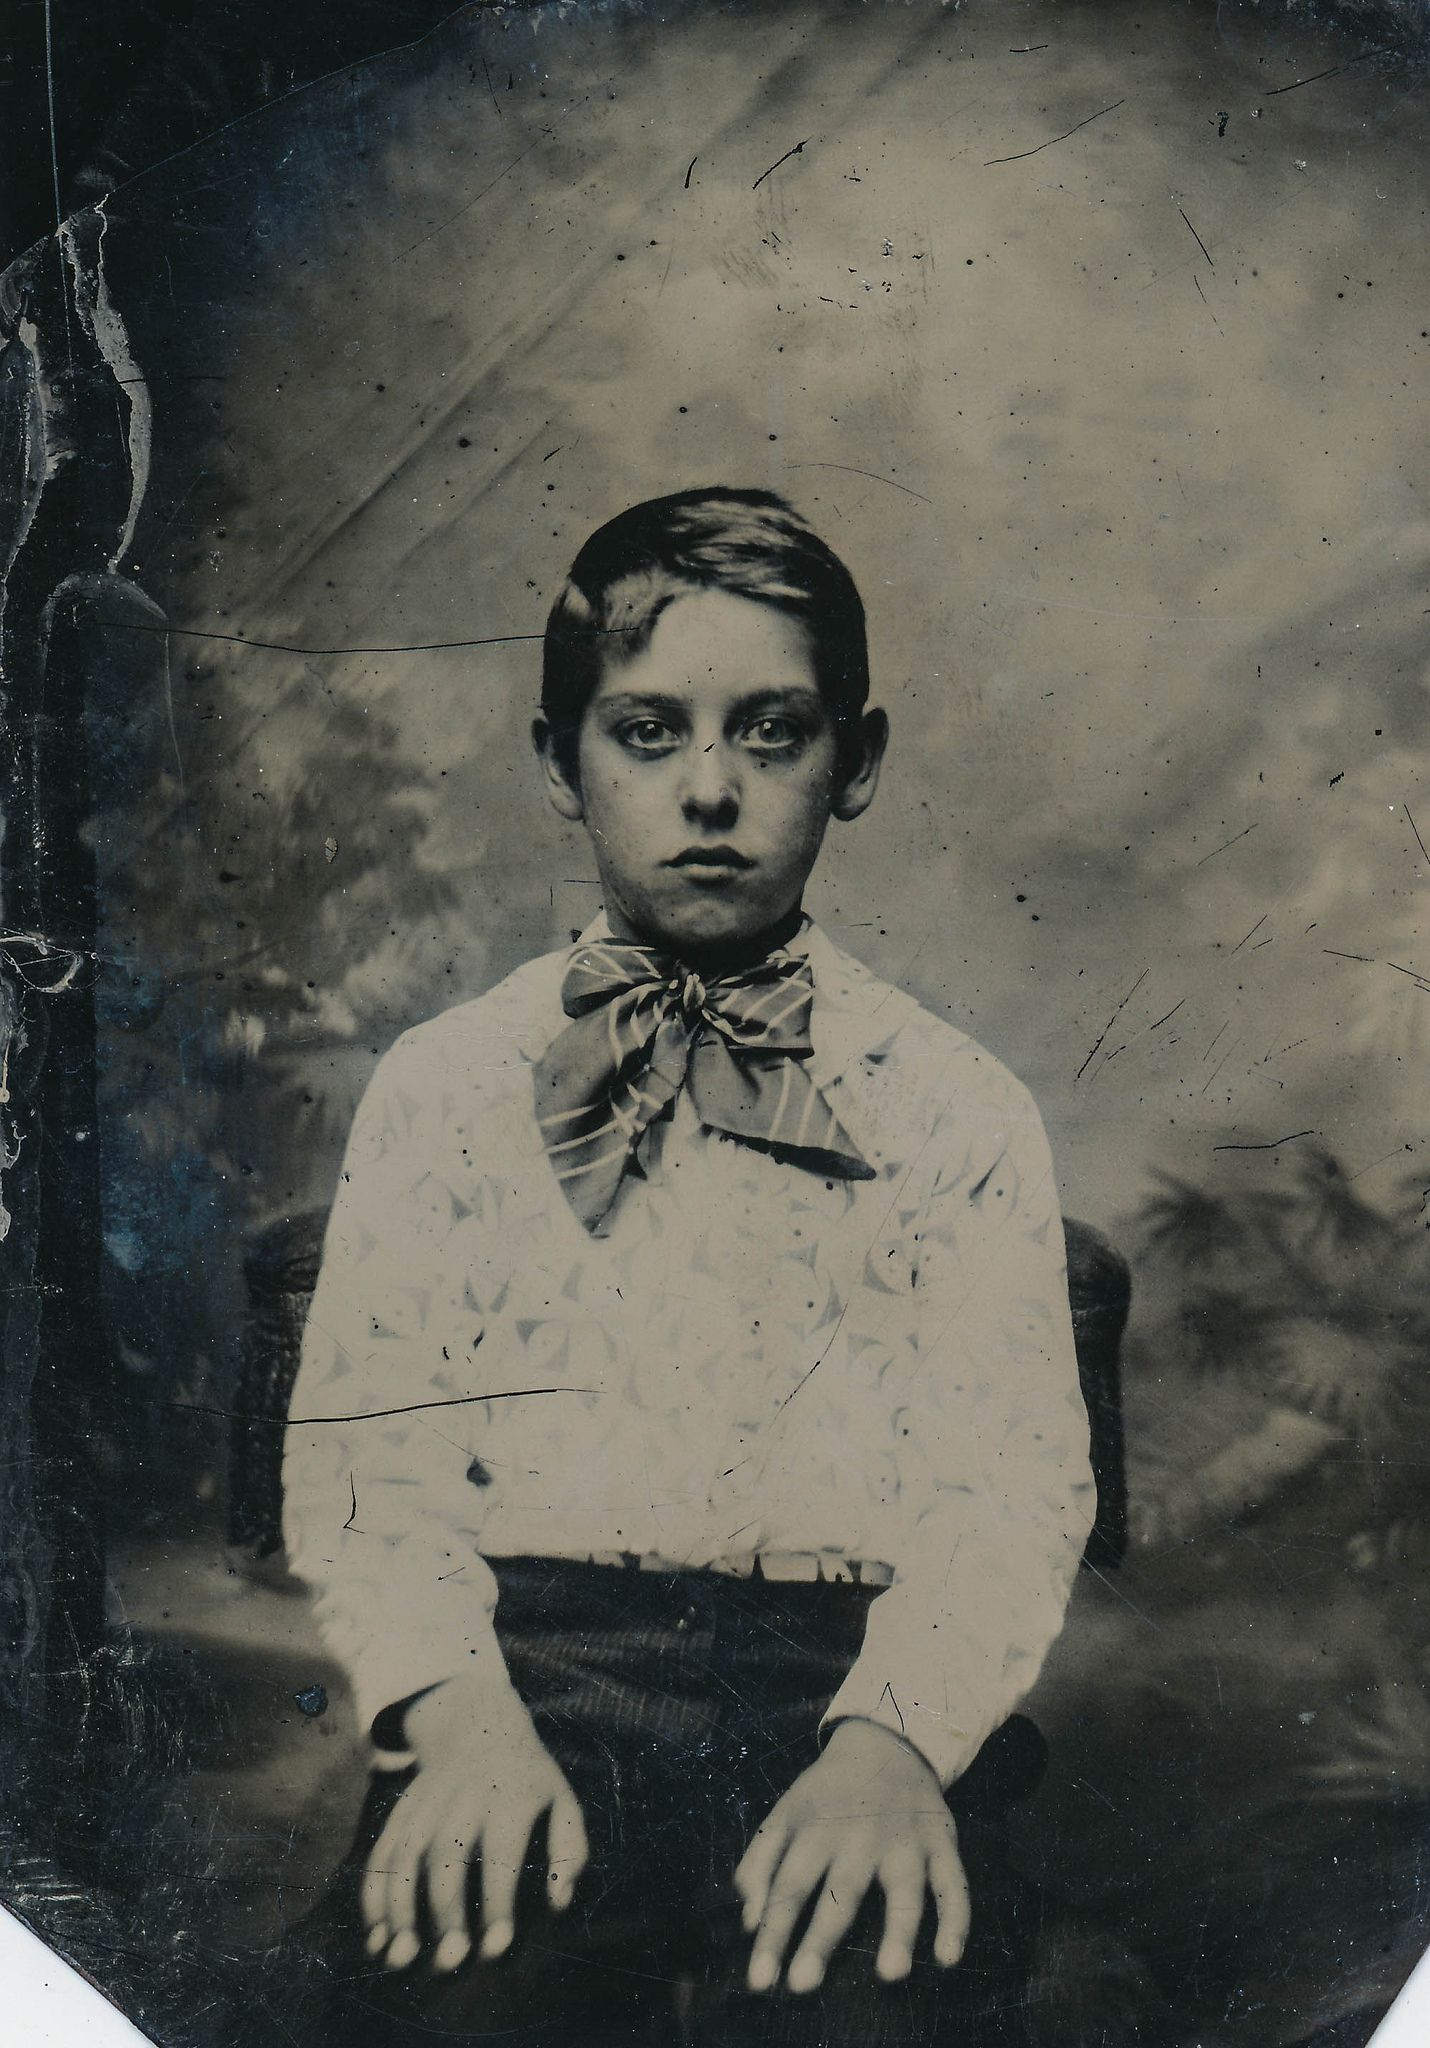 Tin Type Portrait Of Intense Young Boy In 2019